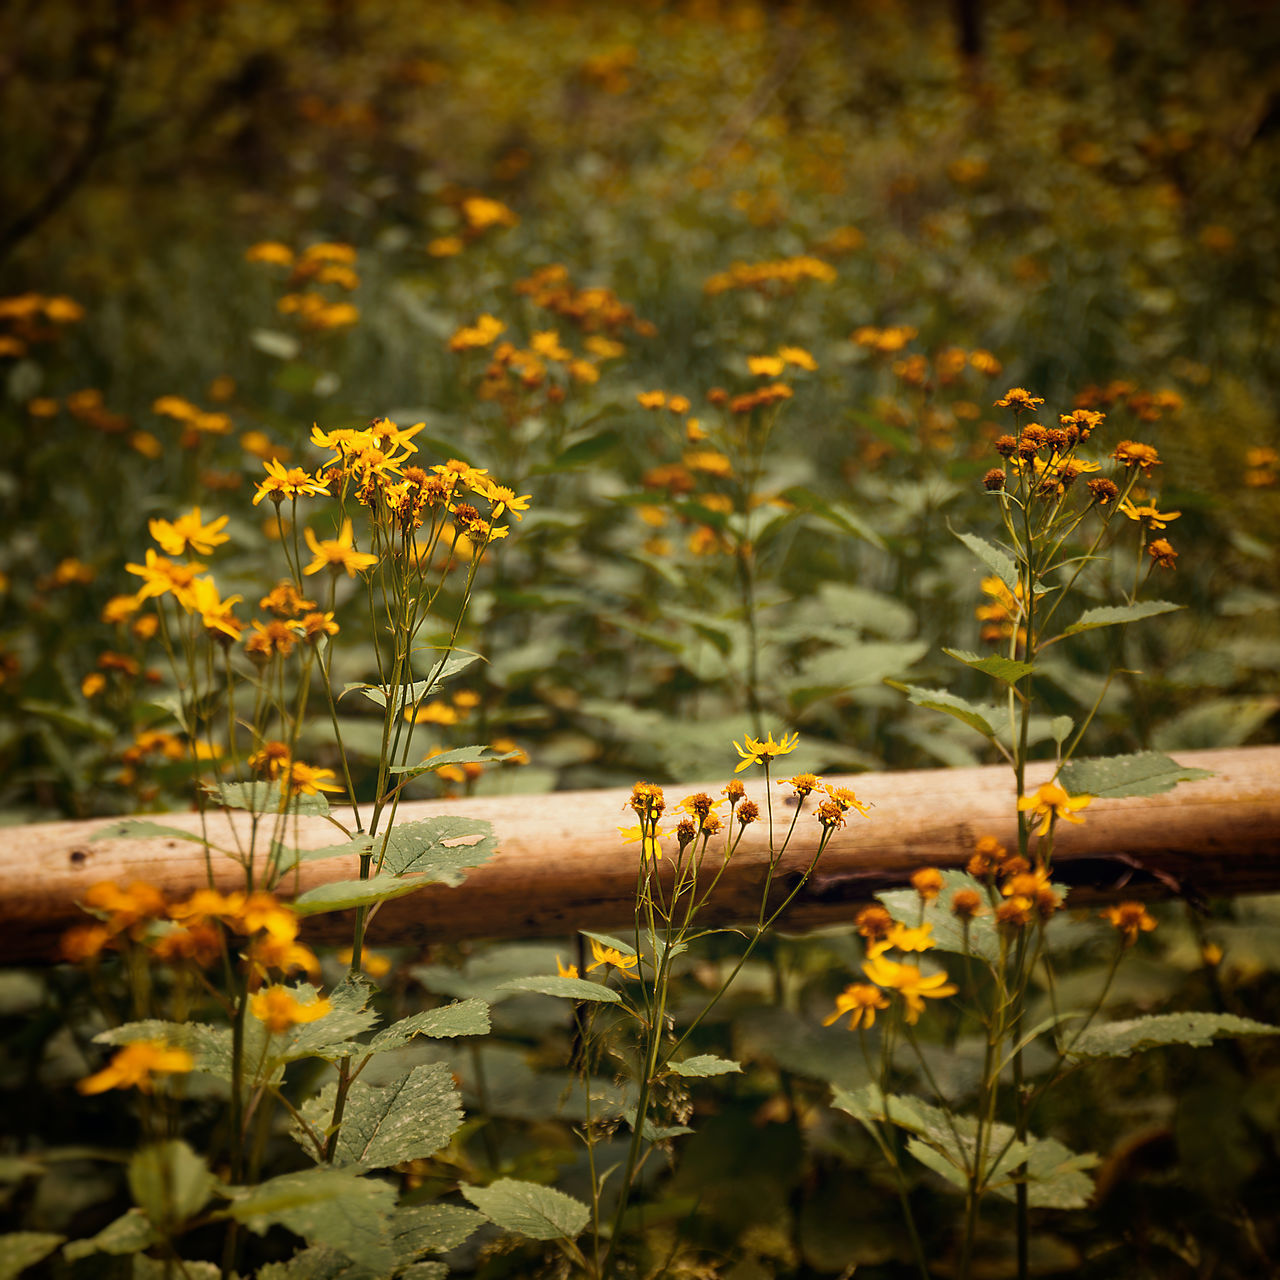 plant, flower, growth, flowering plant, selective focus, nature, beauty in nature, day, field, vulnerability, freshness, fragility, land, no people, close-up, yellow, outdoors, focus on foreground, plant stem, sunlight